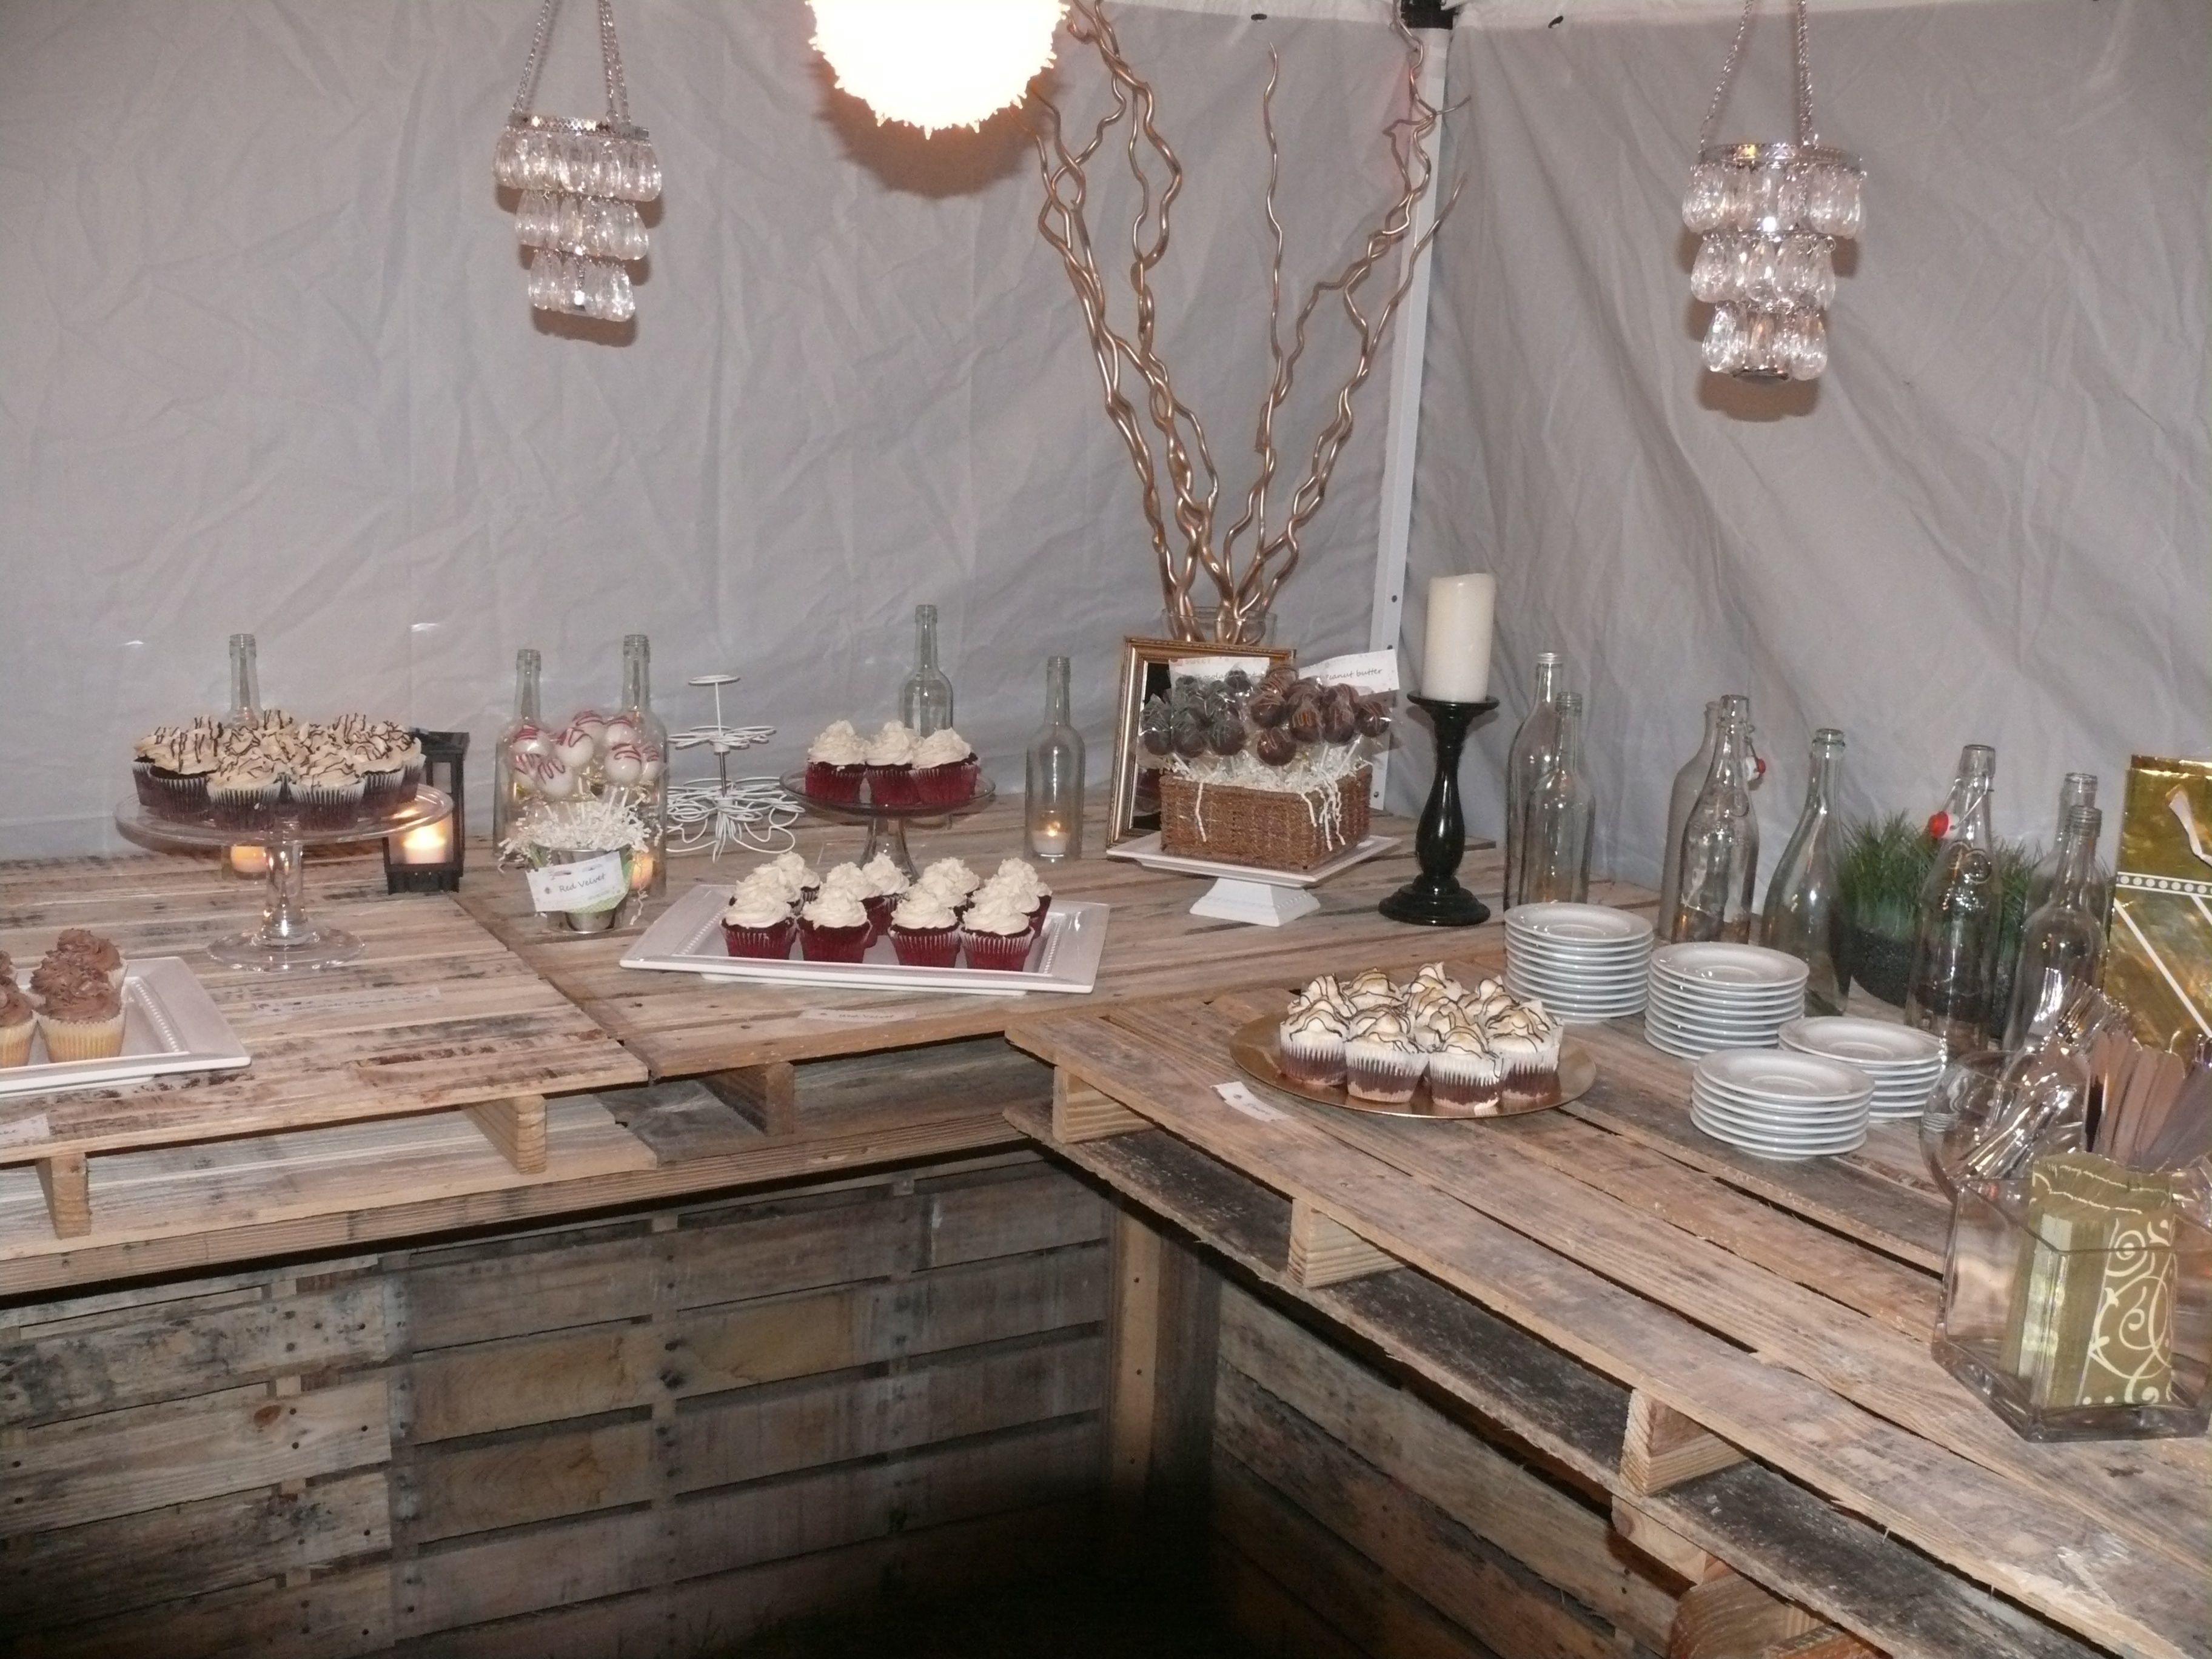 Dessert bar table made out of pallets pallet pinterest for Tables made out of pallets